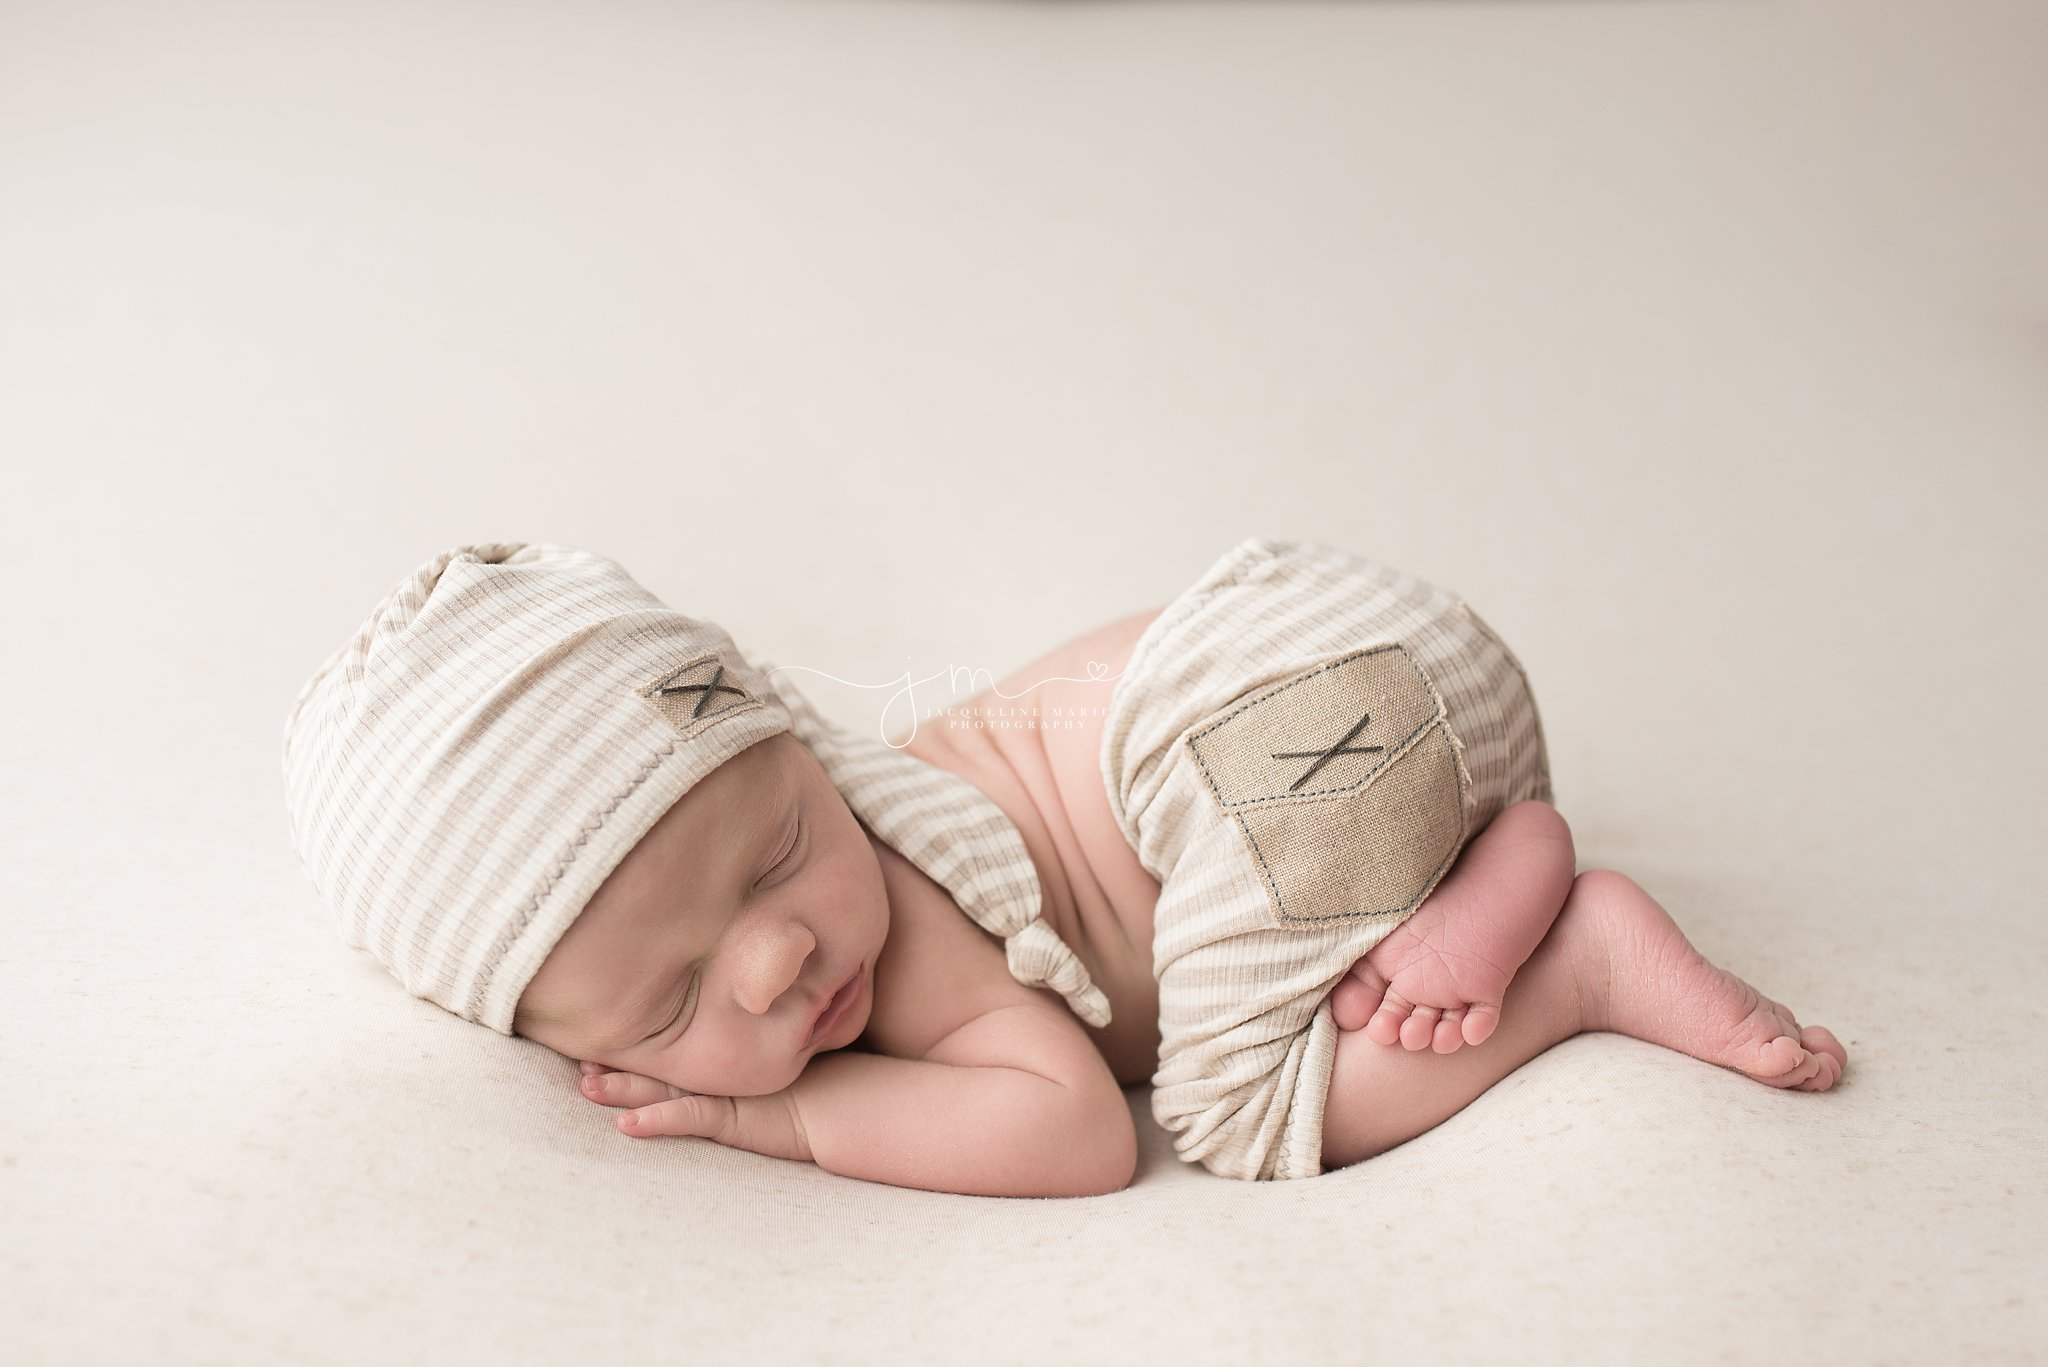 columbus ohio newborn photographer poses baby in neutral hat and pants for newborn portraits